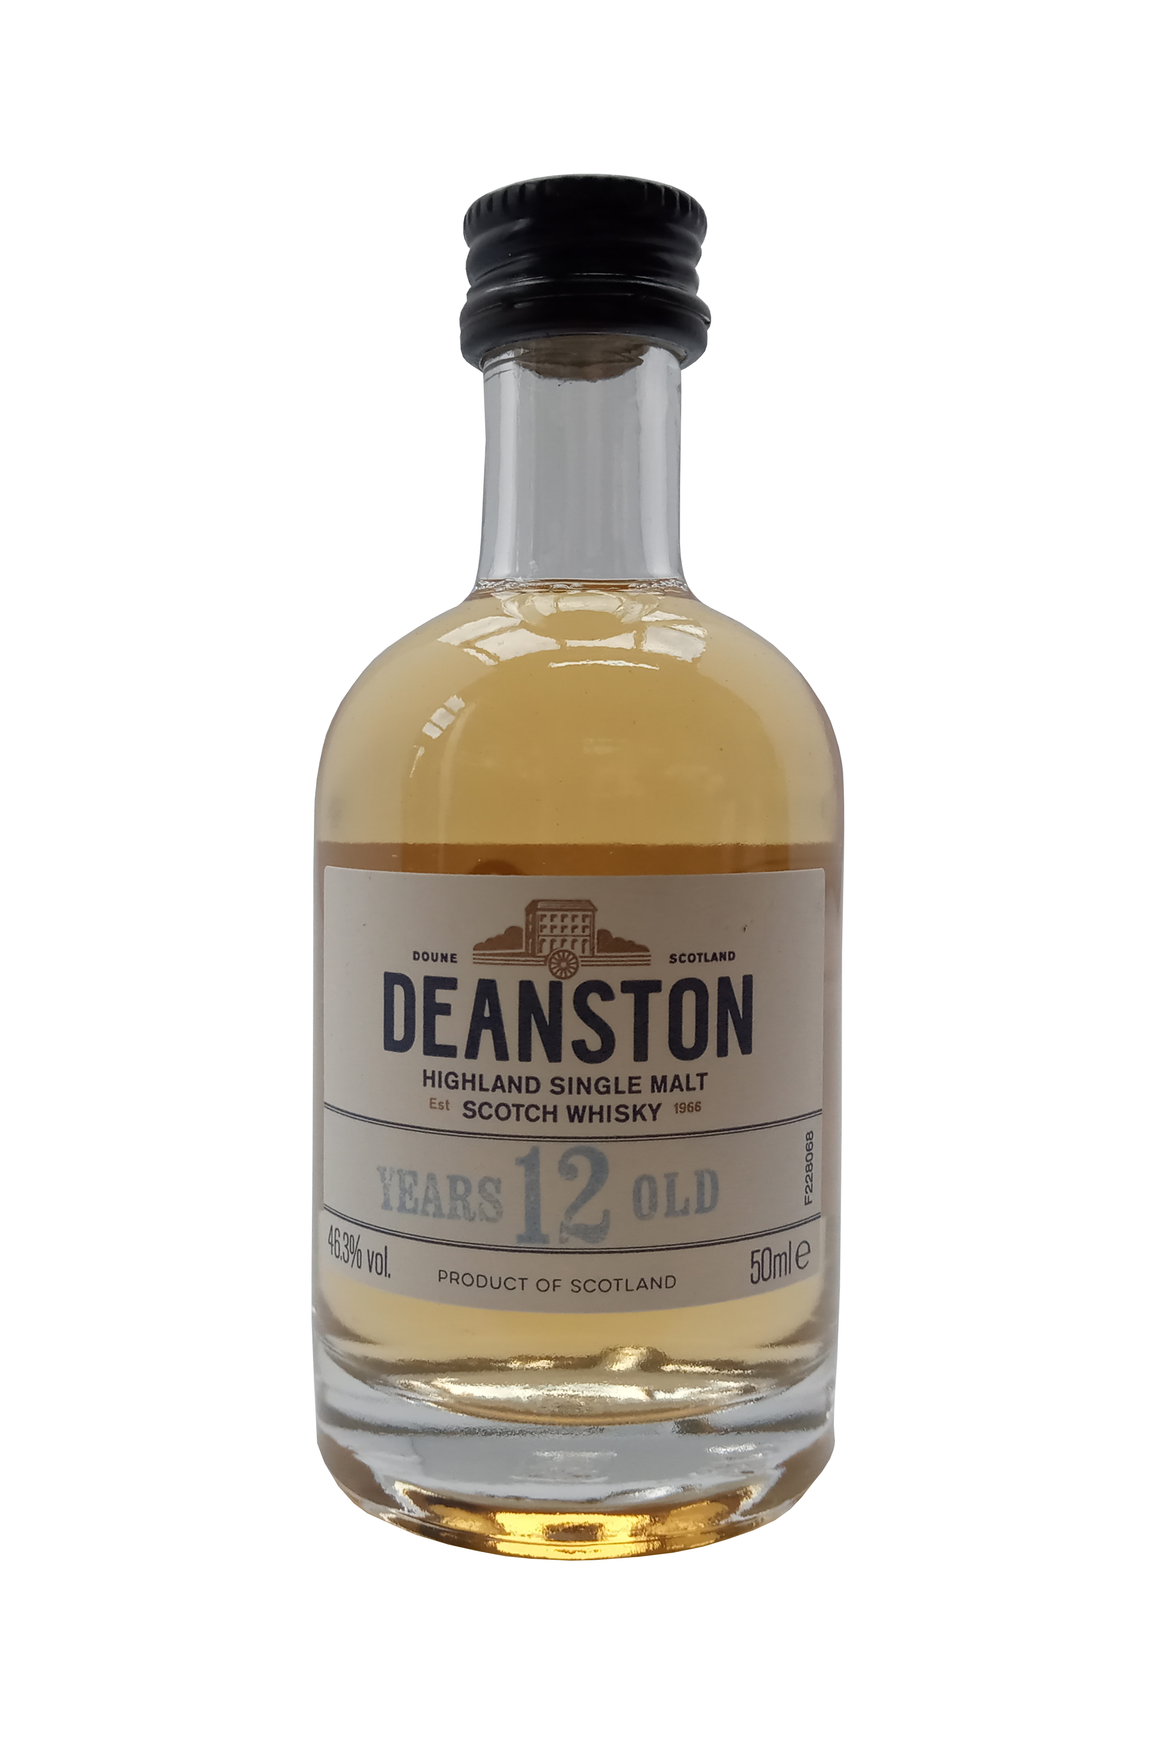 Deanston Aged 12 Years Single Malt miniature whisky 5cl 46.3%